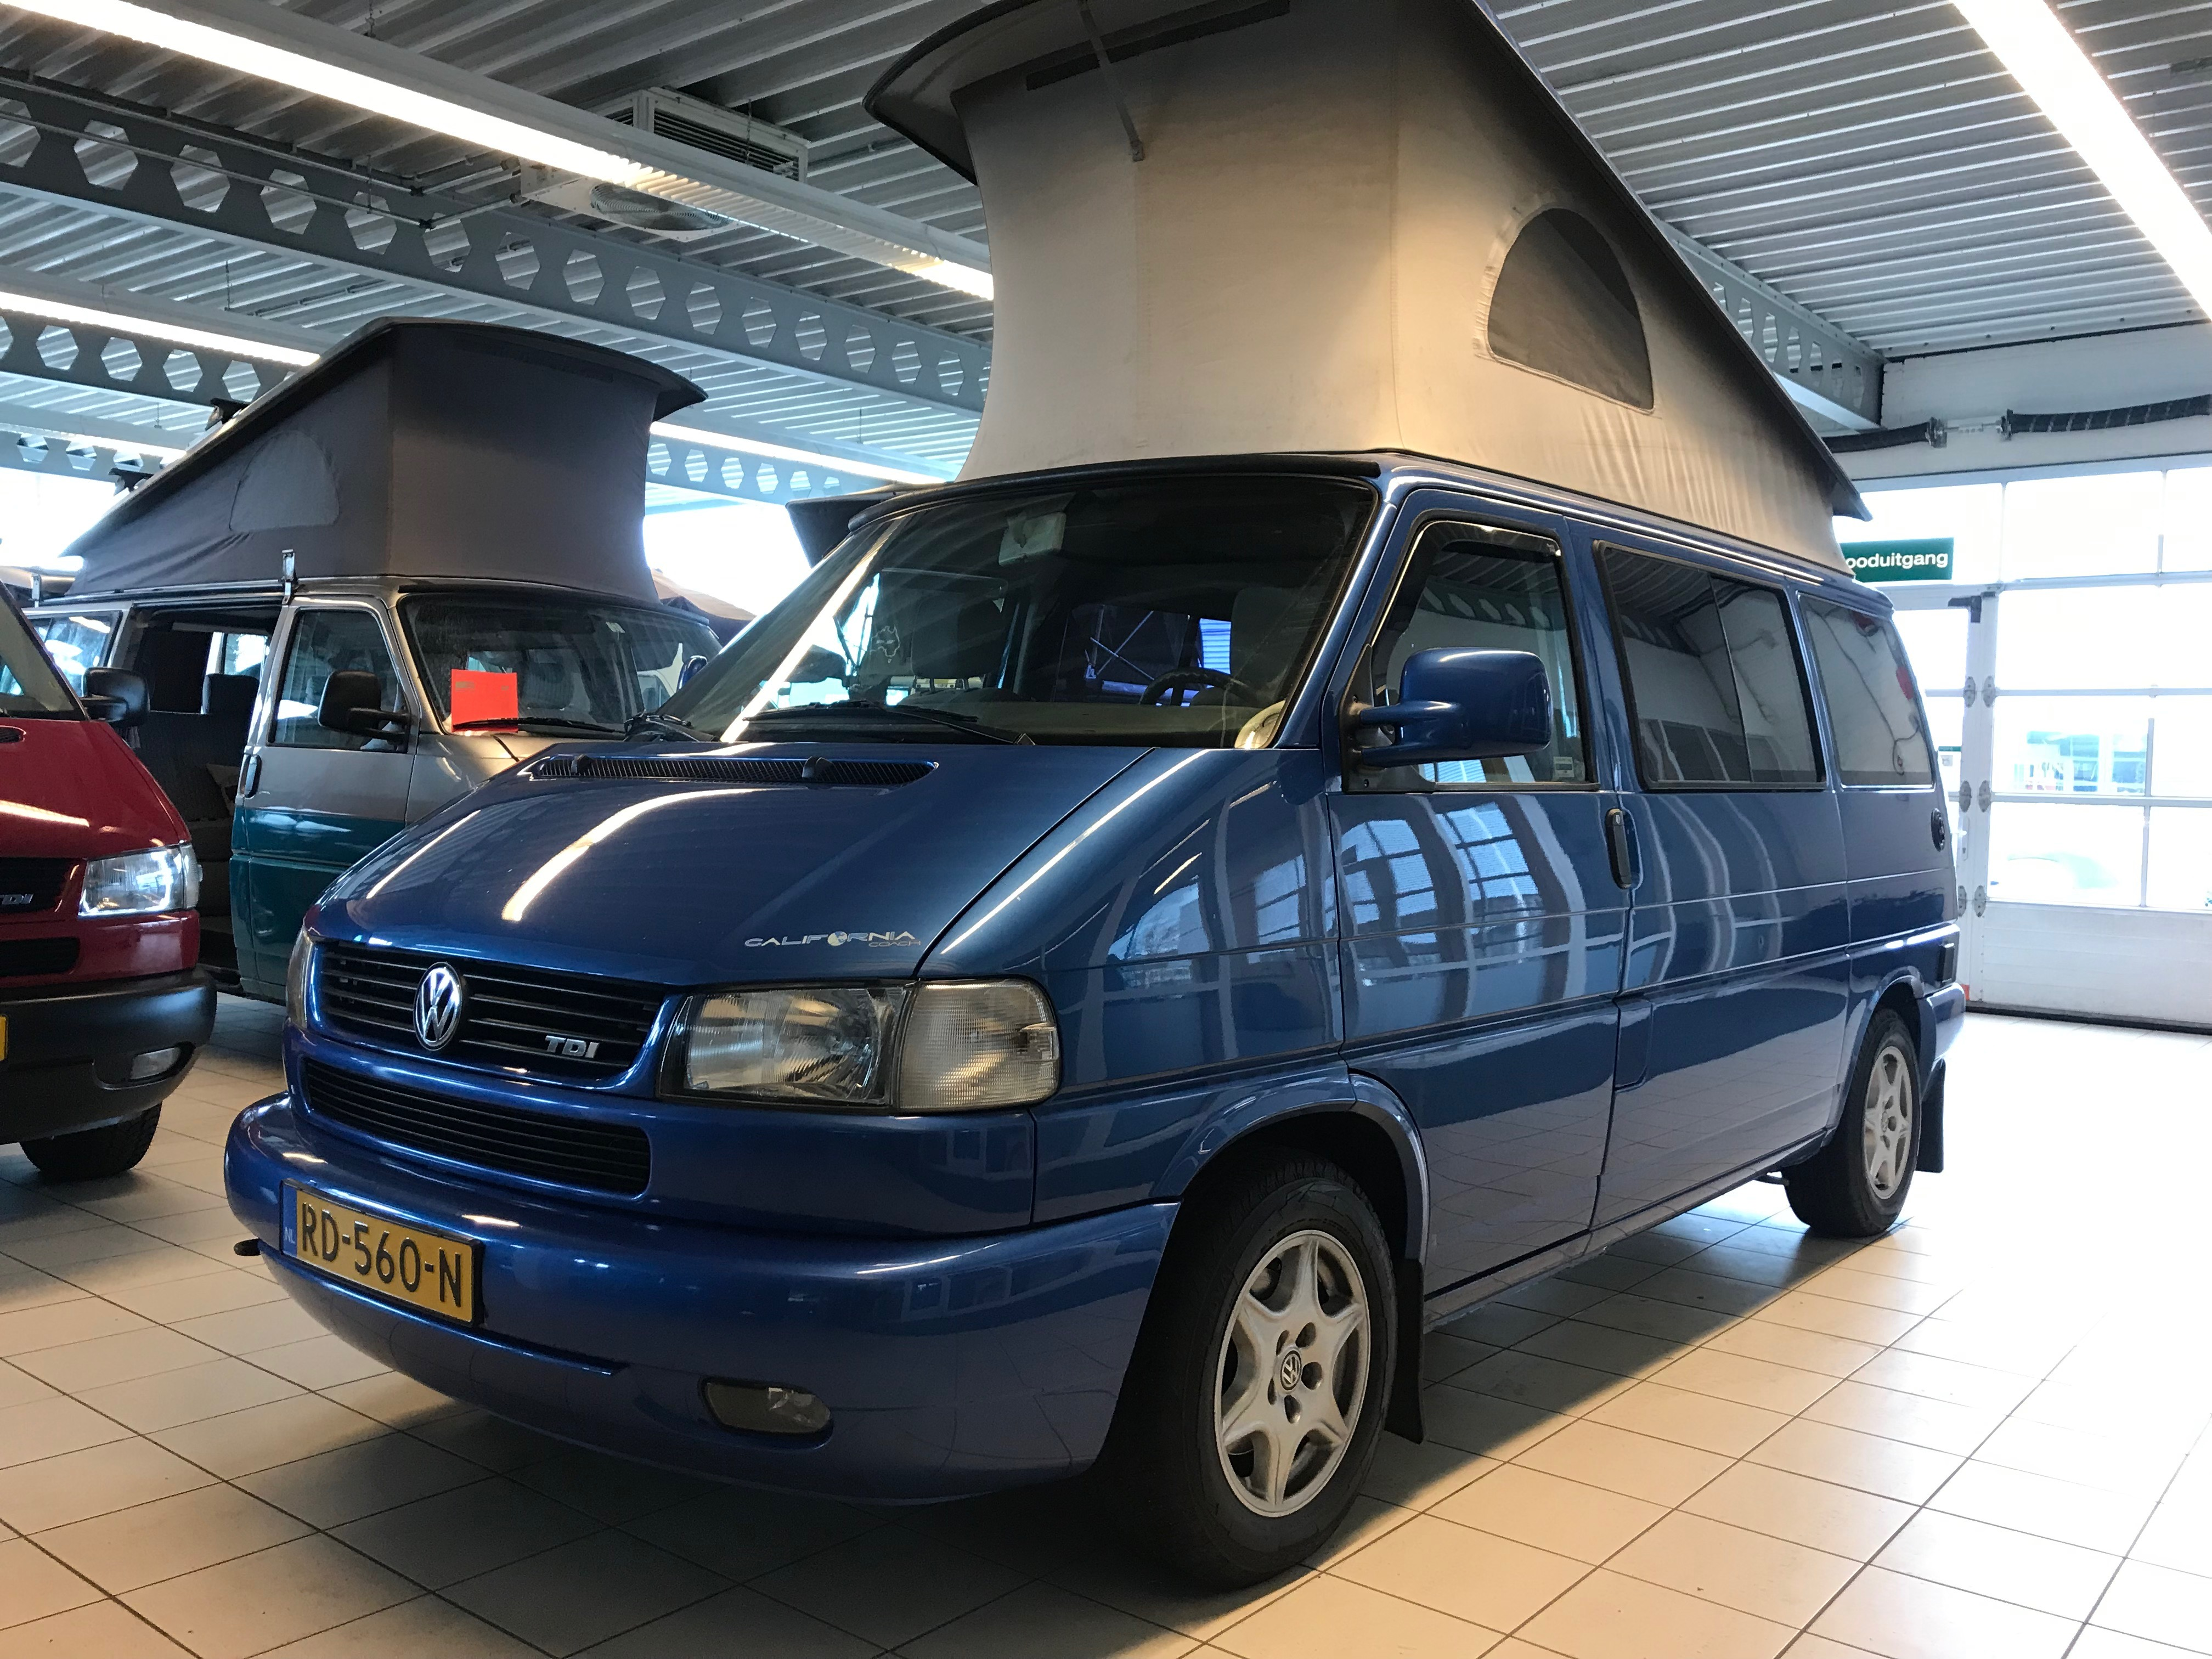 VW T4 CALIFORNIA 2.5 TDI APRIL 2001 HEEL MOOI!